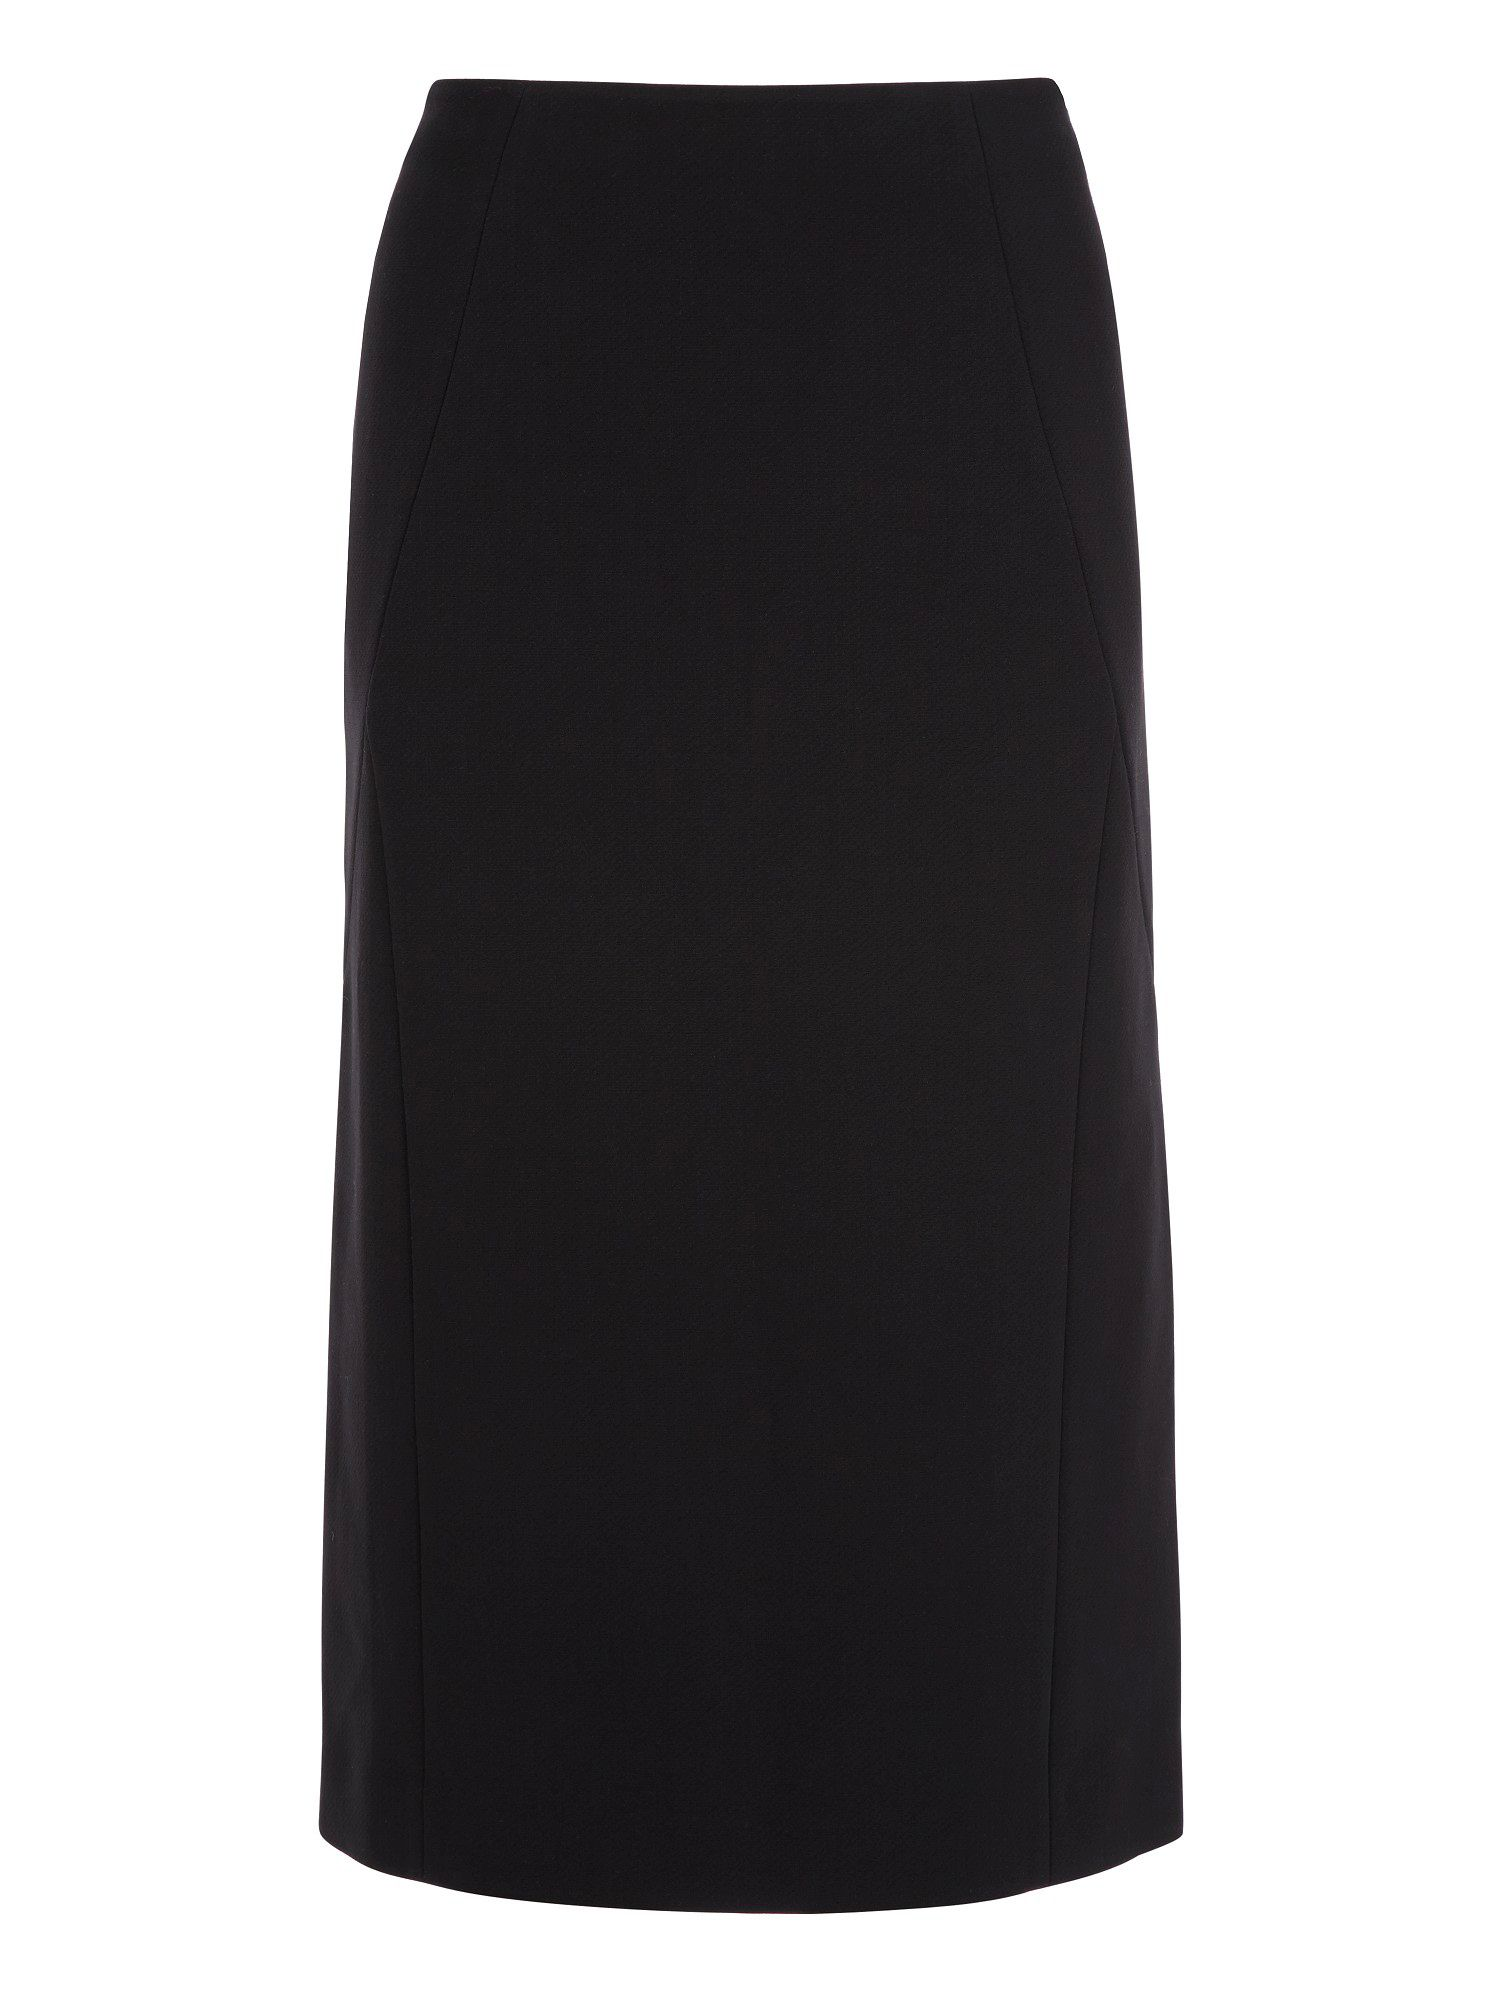 Straight black tailored skirt